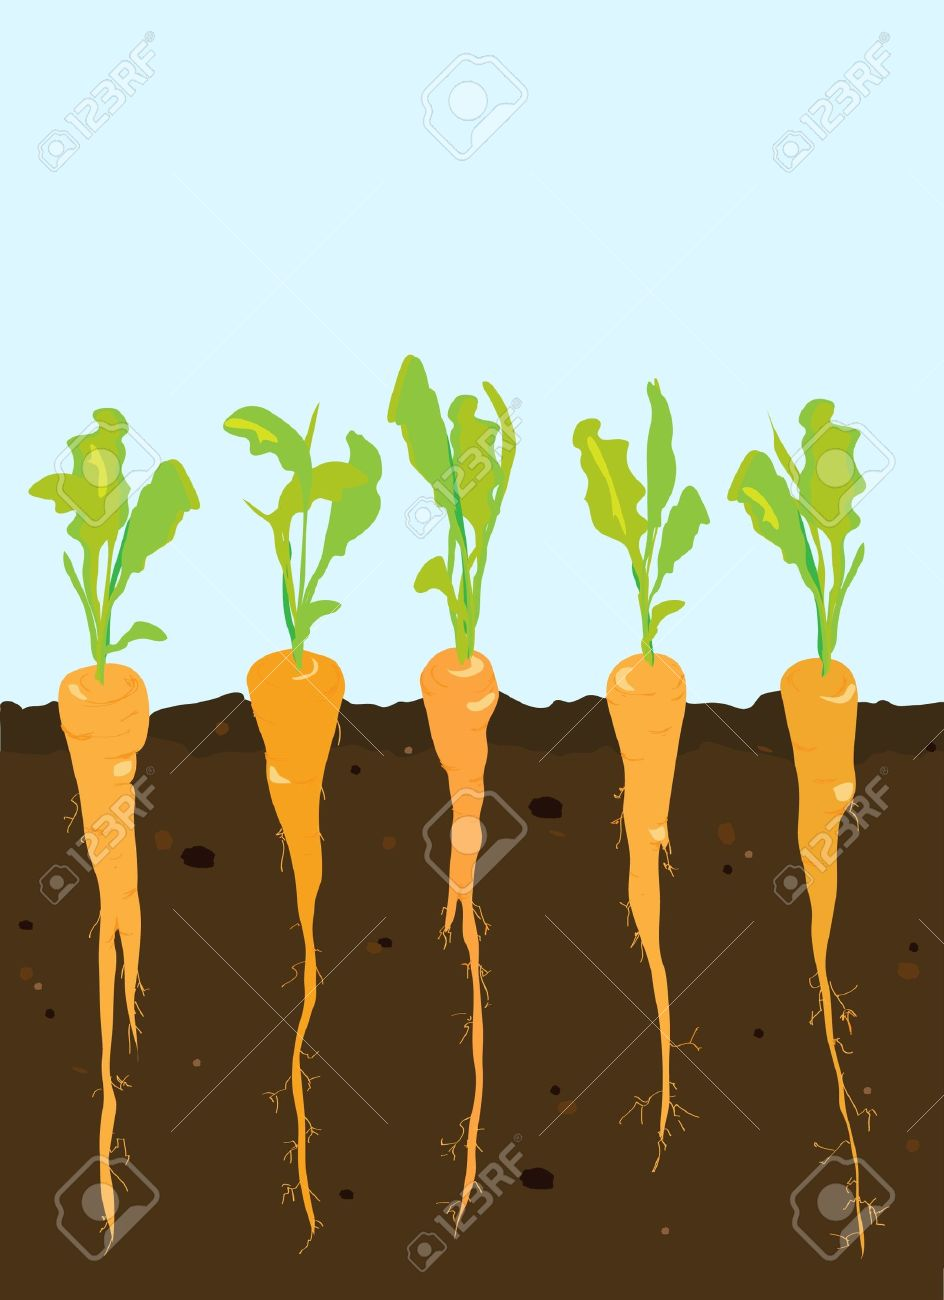 Carrot clipart carrot plant. Diagram download